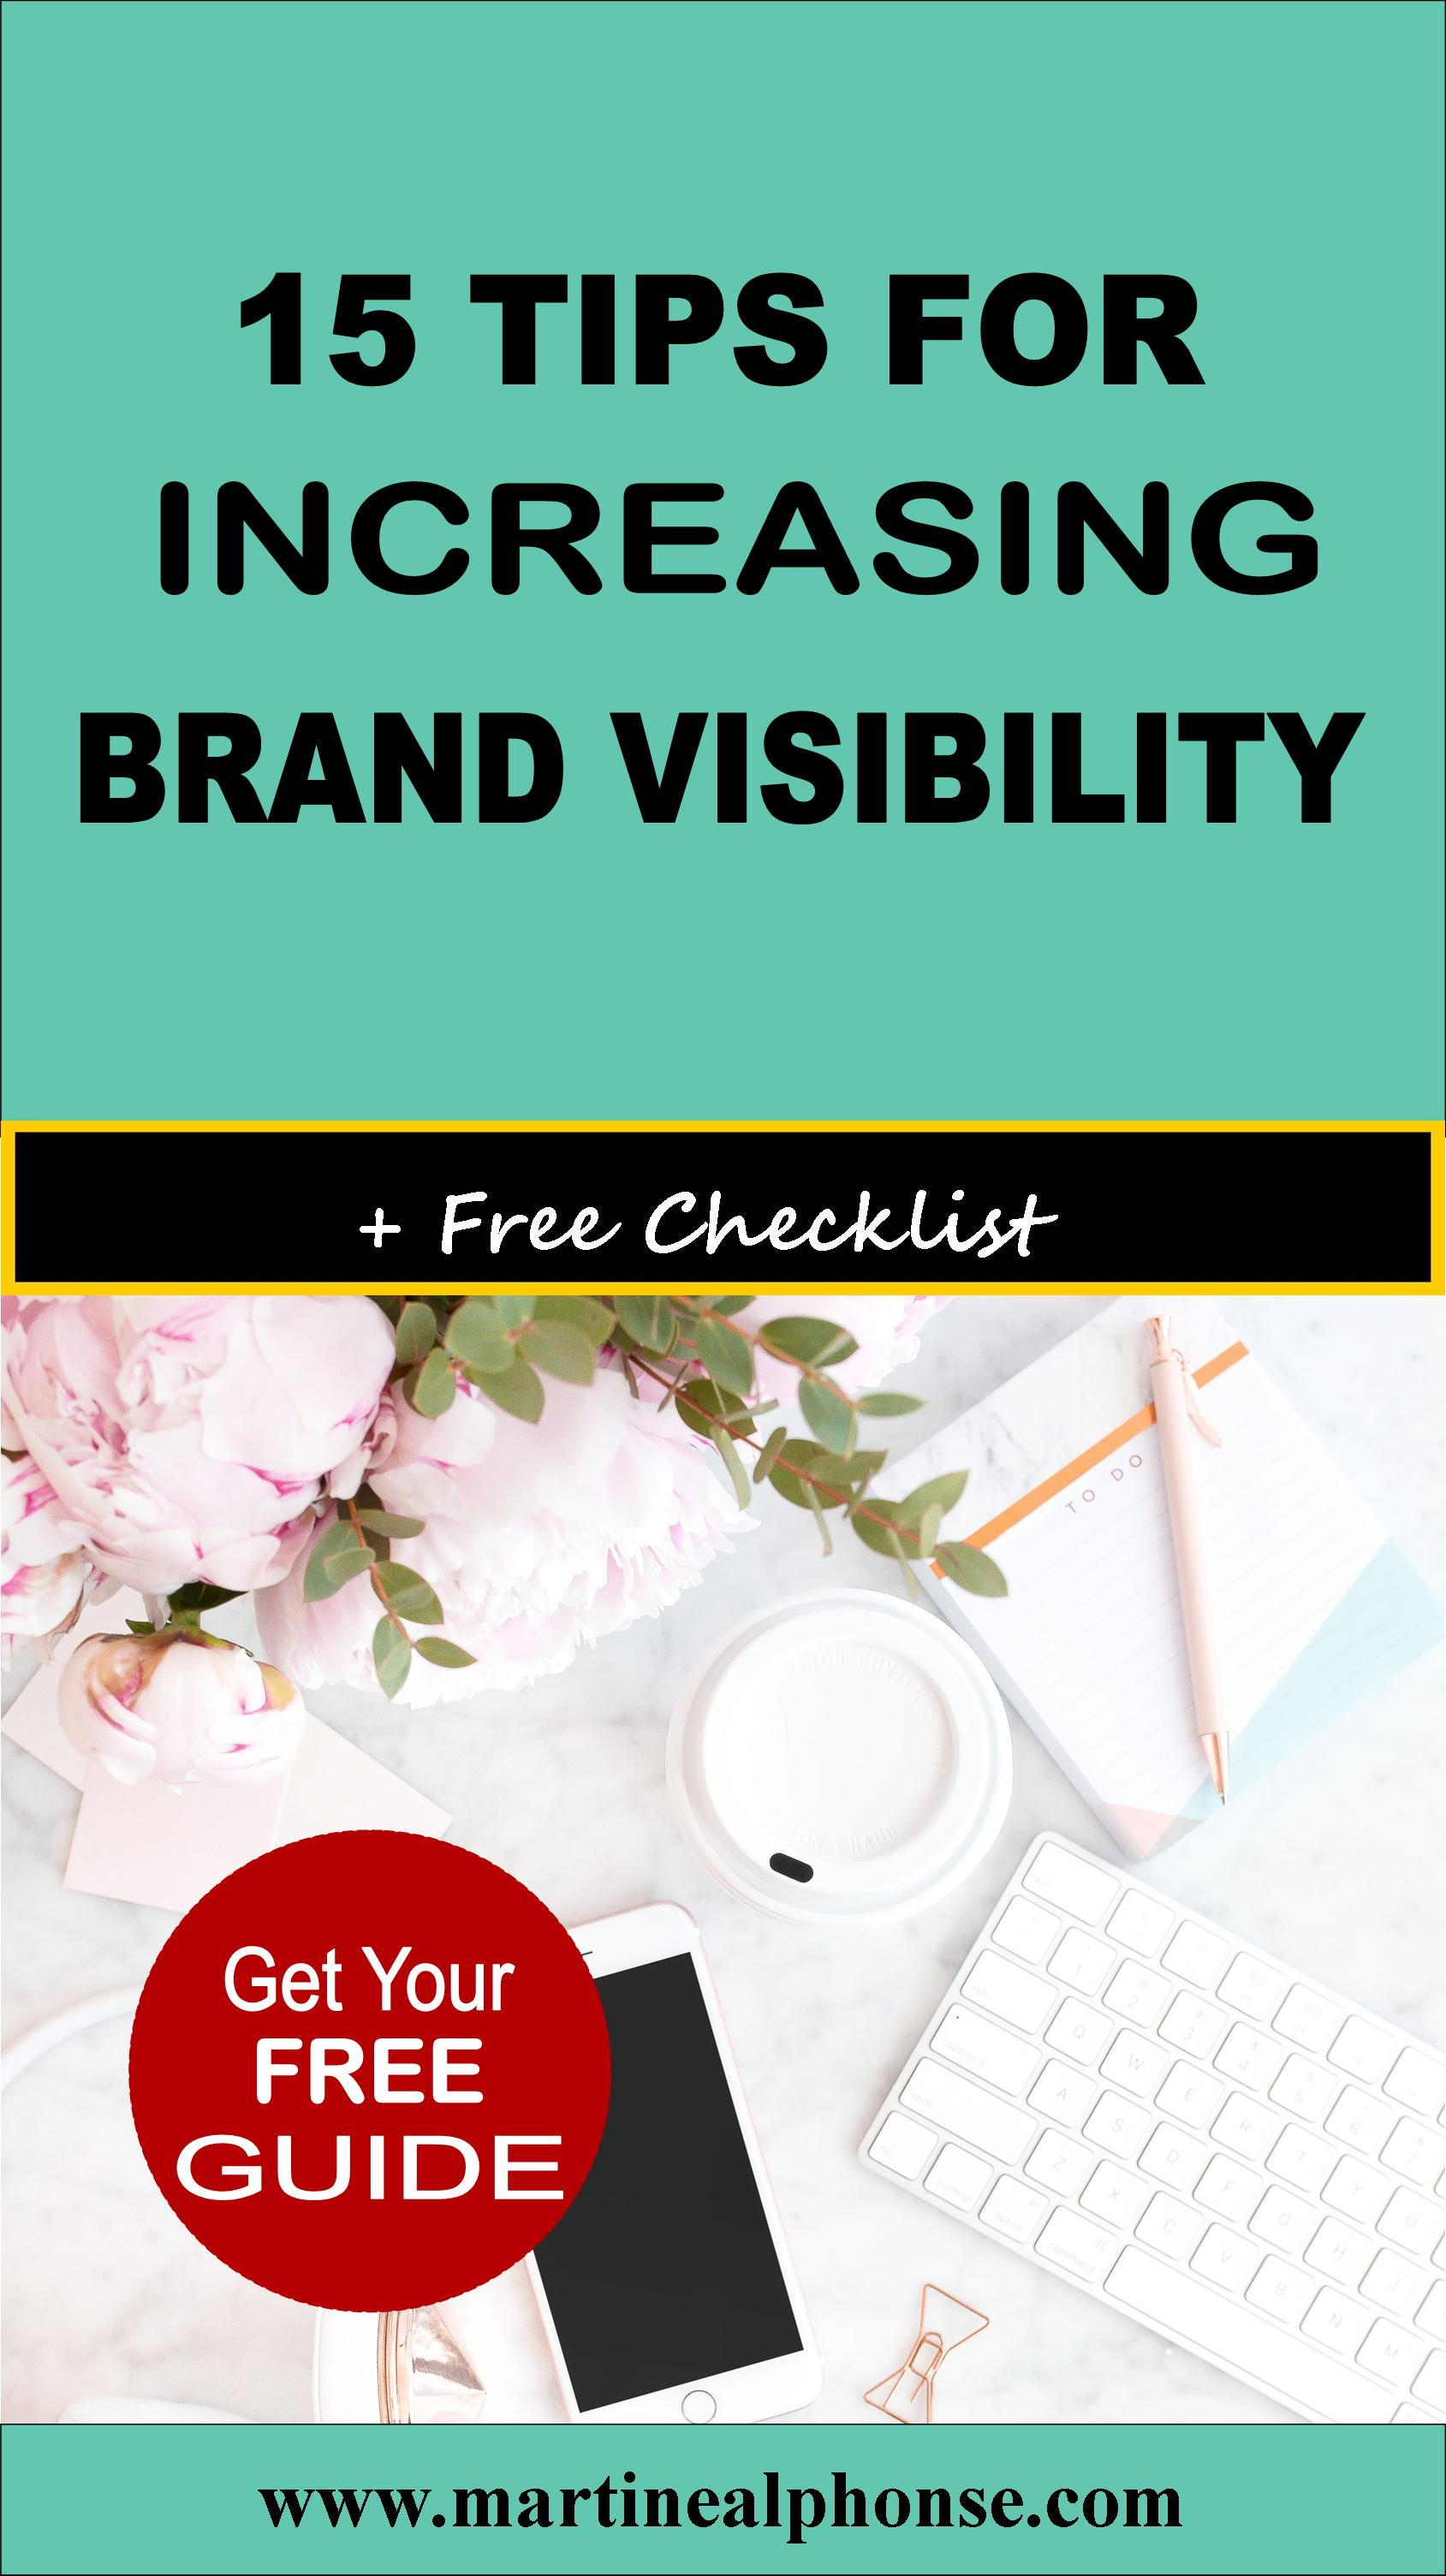 15 Tips for Increasing Brand Visibility - Martine Alphonse